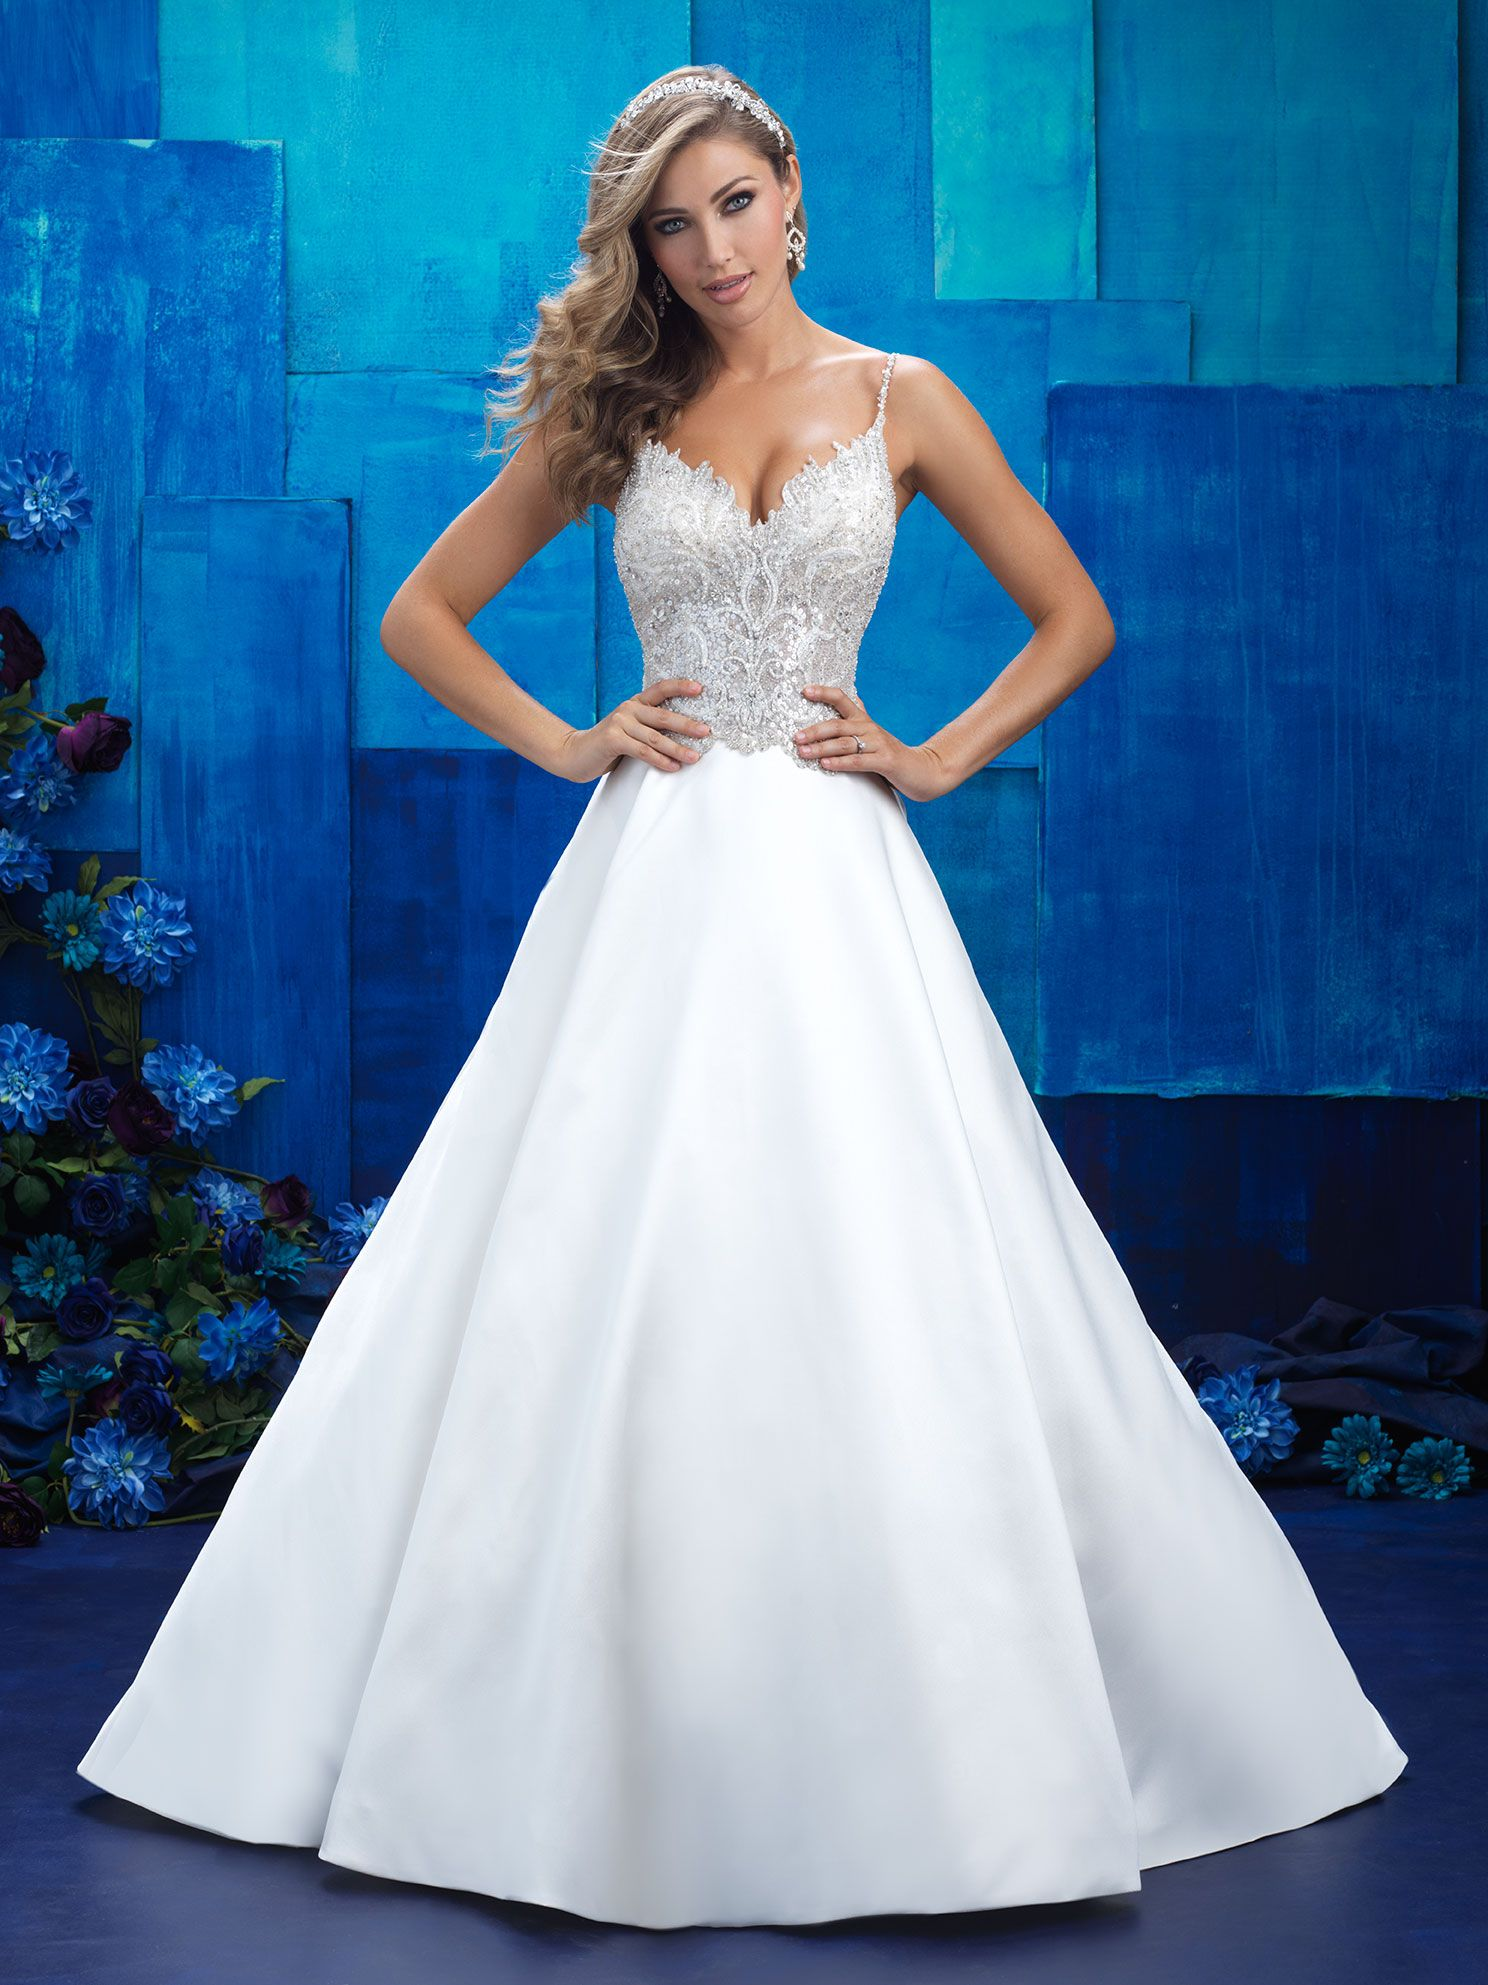 Save up to 20% on this This white ballgown that intricately beaded ...